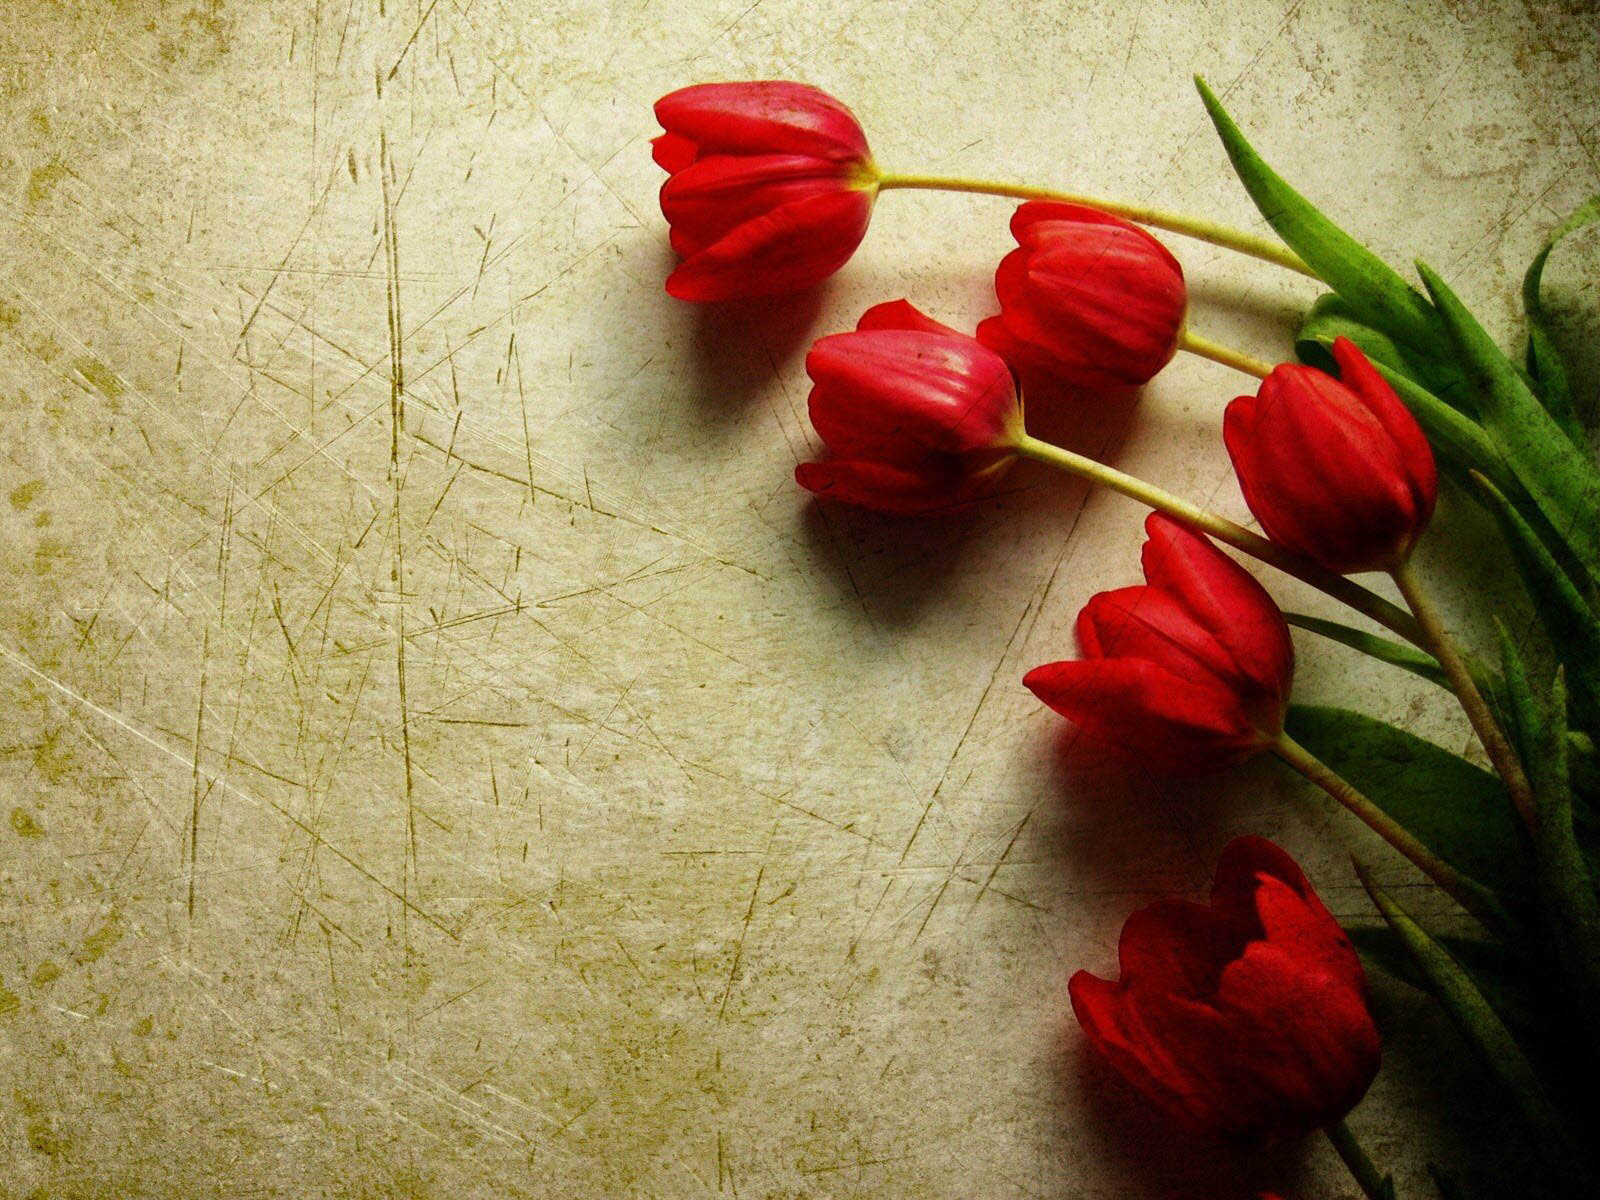 Funny Car Wallpapers Free Wallpapers Red Tulips Wallpapers